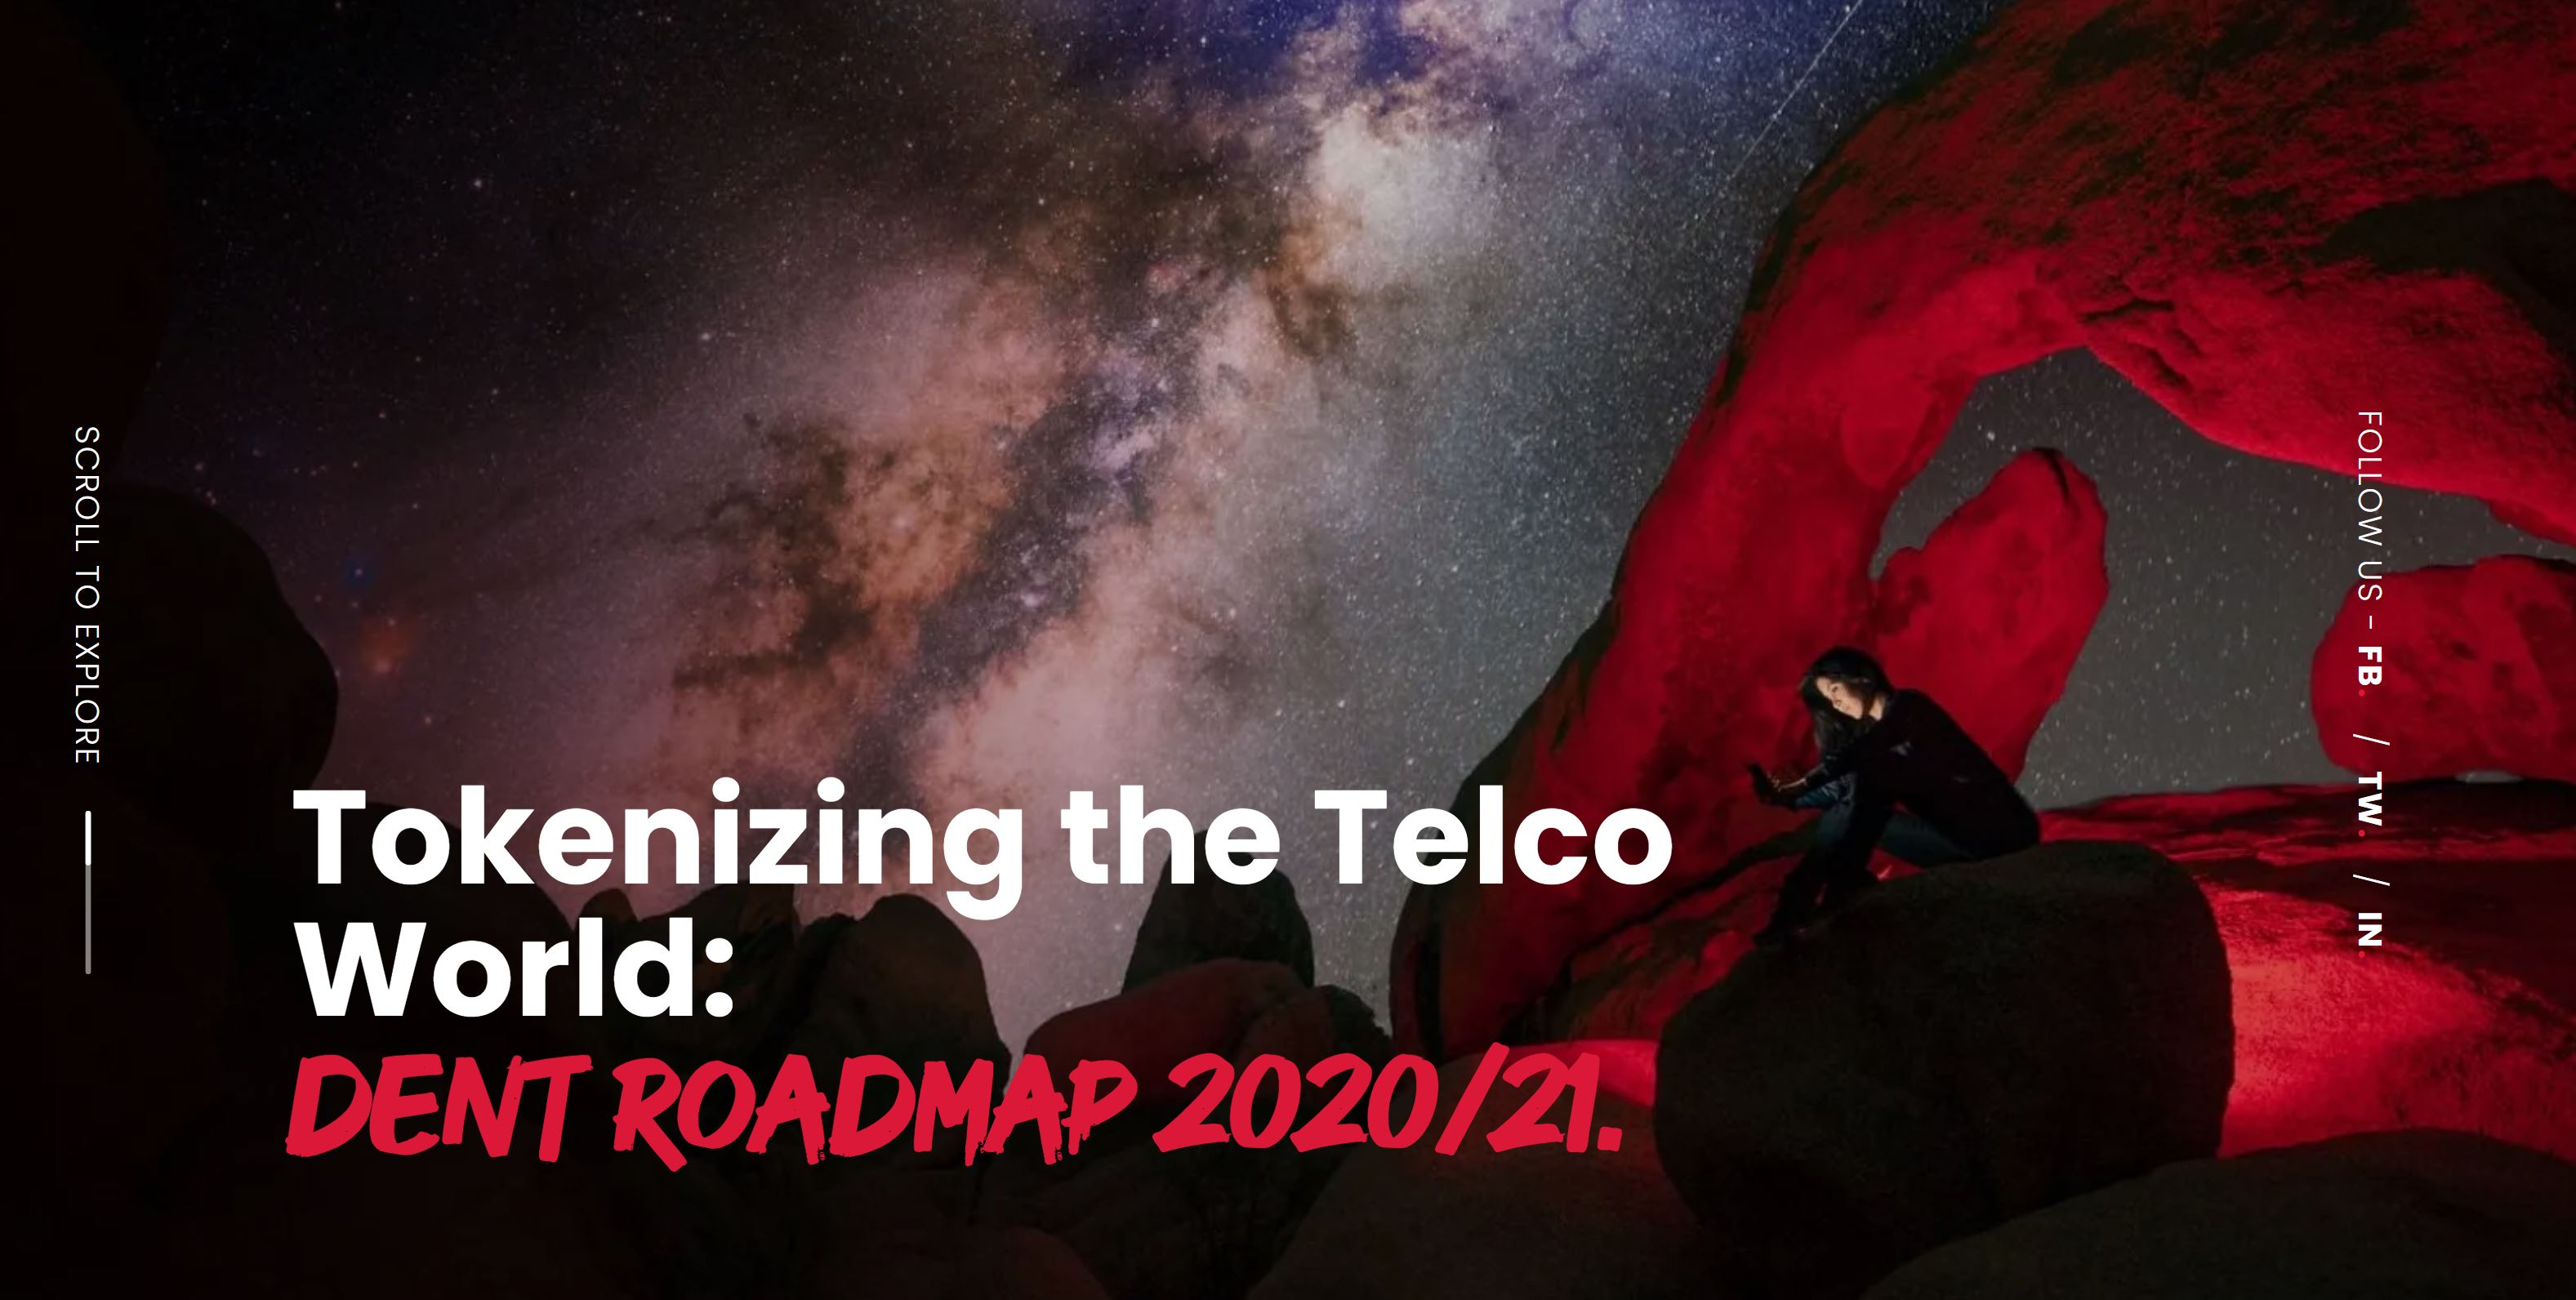 Dent Roadmap for 2020 and 2021